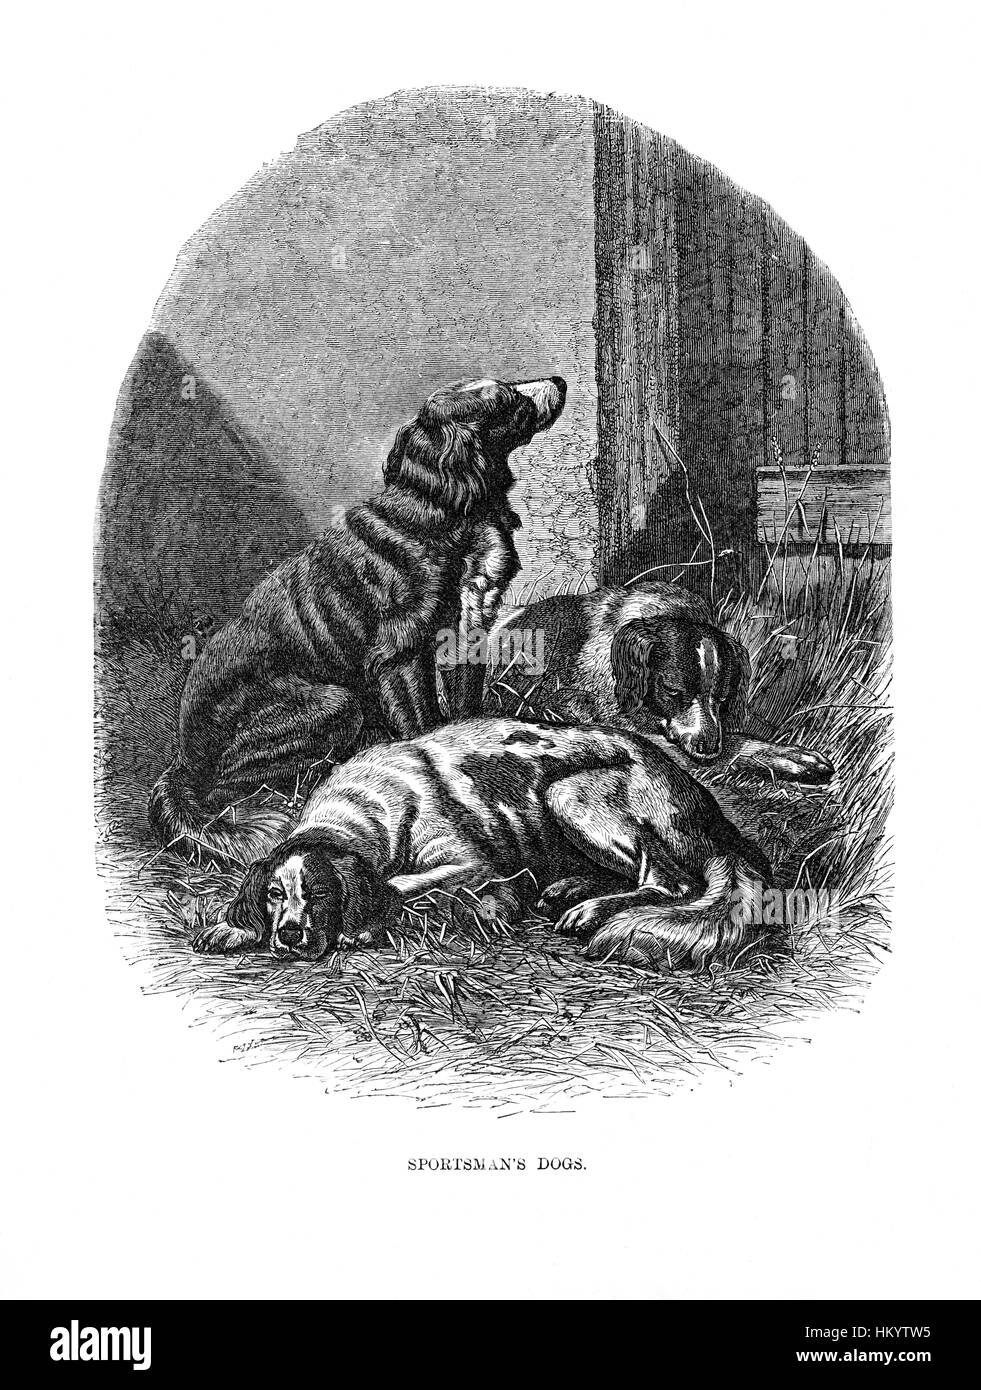 Sportsman's Dogs. 19th century Engraving from 'Popular Natural History' published in 1866. - Stock Image